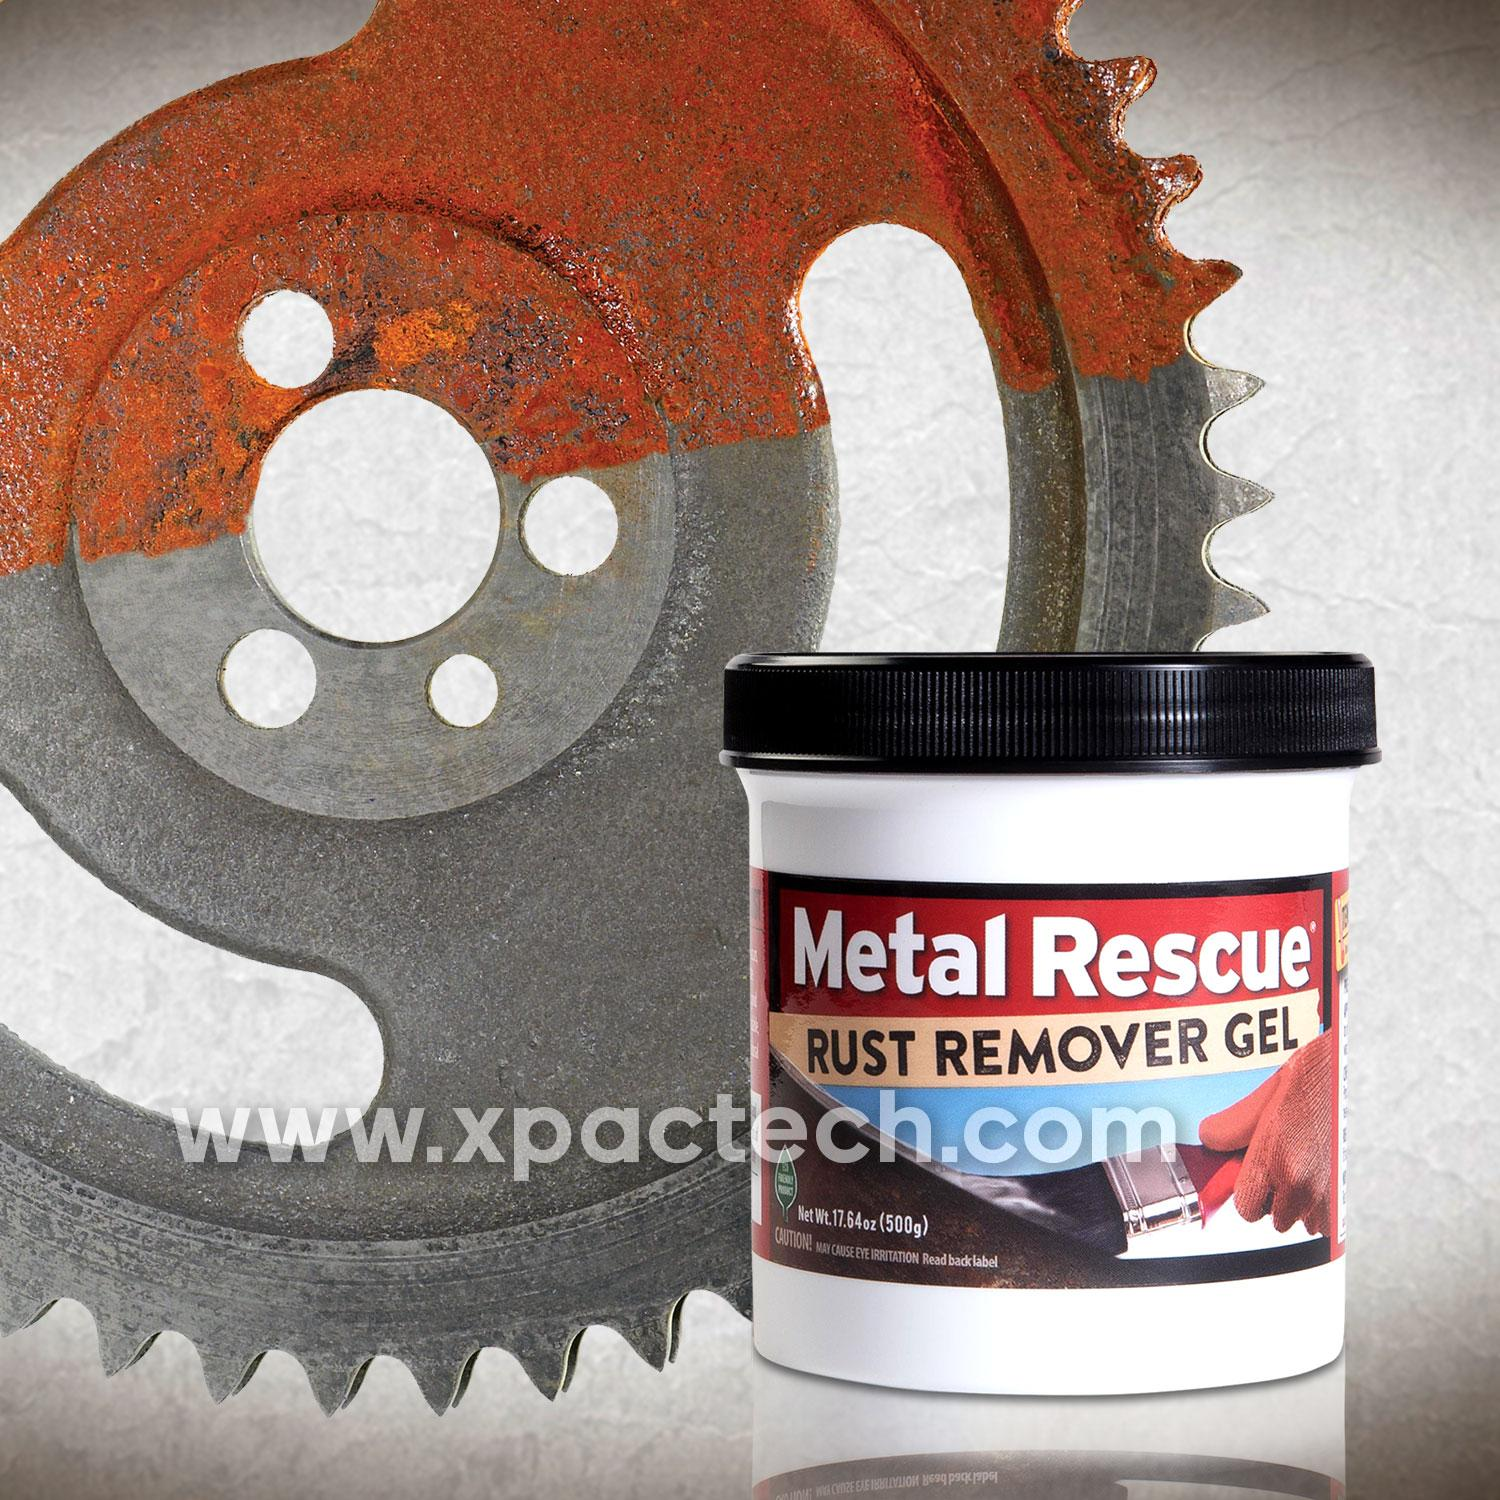 Metal Rescue® Rust Remover Gel By Xpac Technologies Pte Ltd.